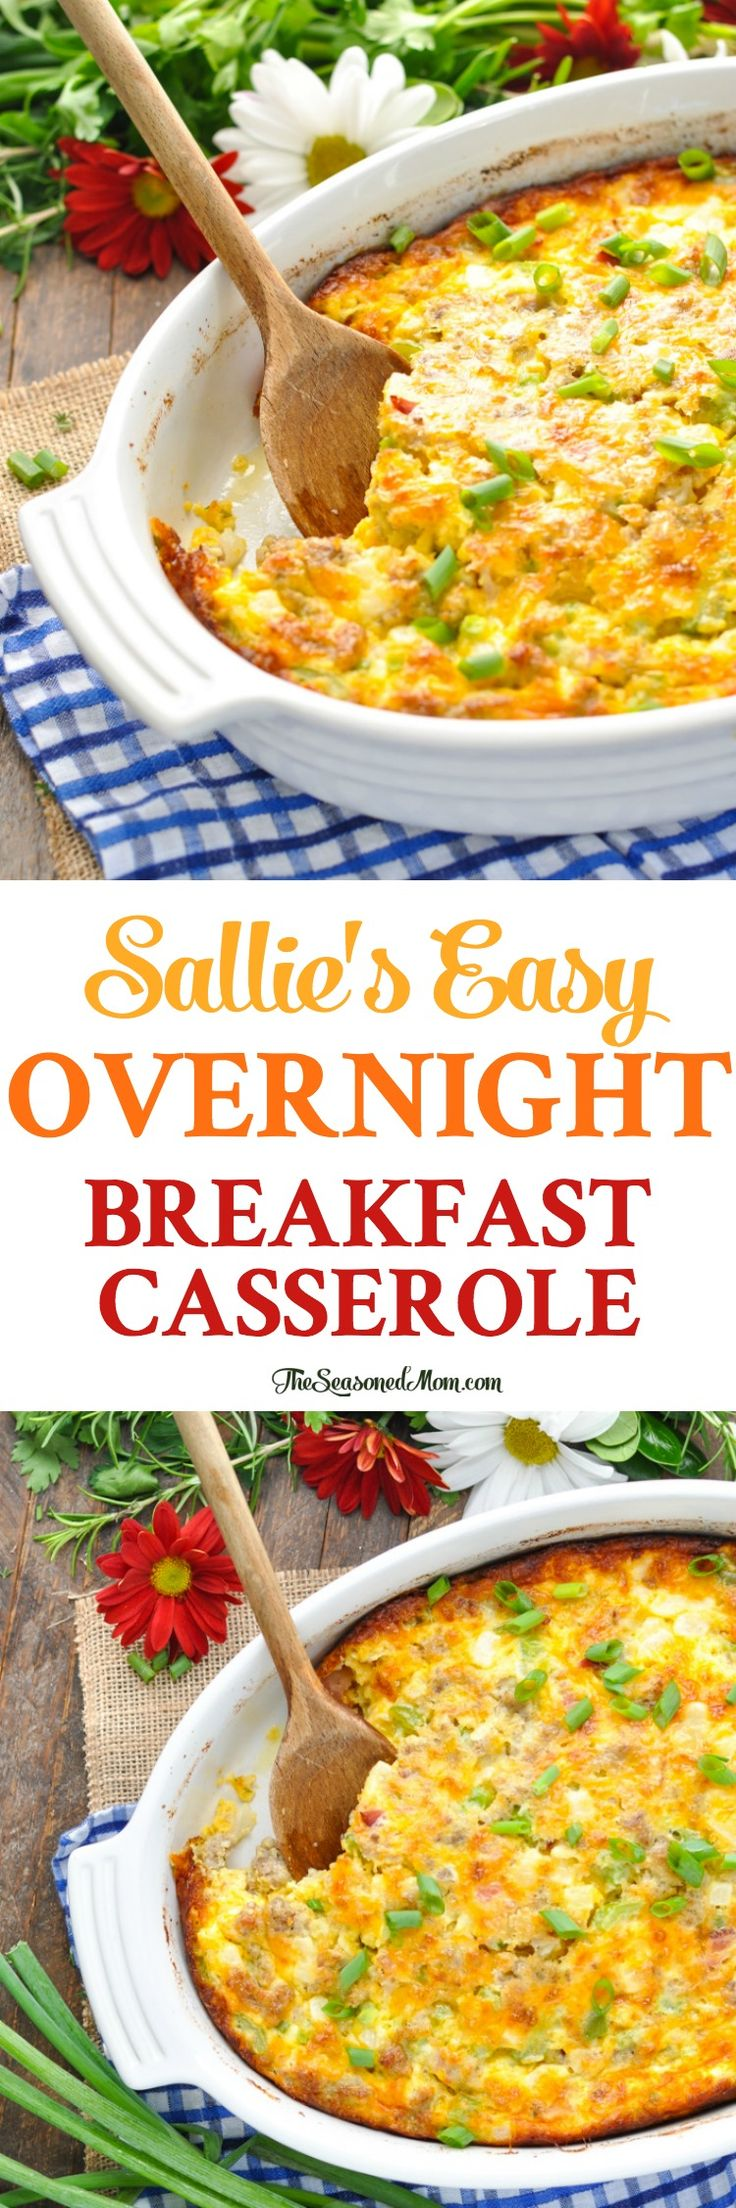 Sallie's Overnight Easy Breakfast Casserole is the perfect brunch recipe for a special morning! Breakfast Ideas | Make Ahead Breakfast Recipes | Brunch Ideas #brunch #breakfast